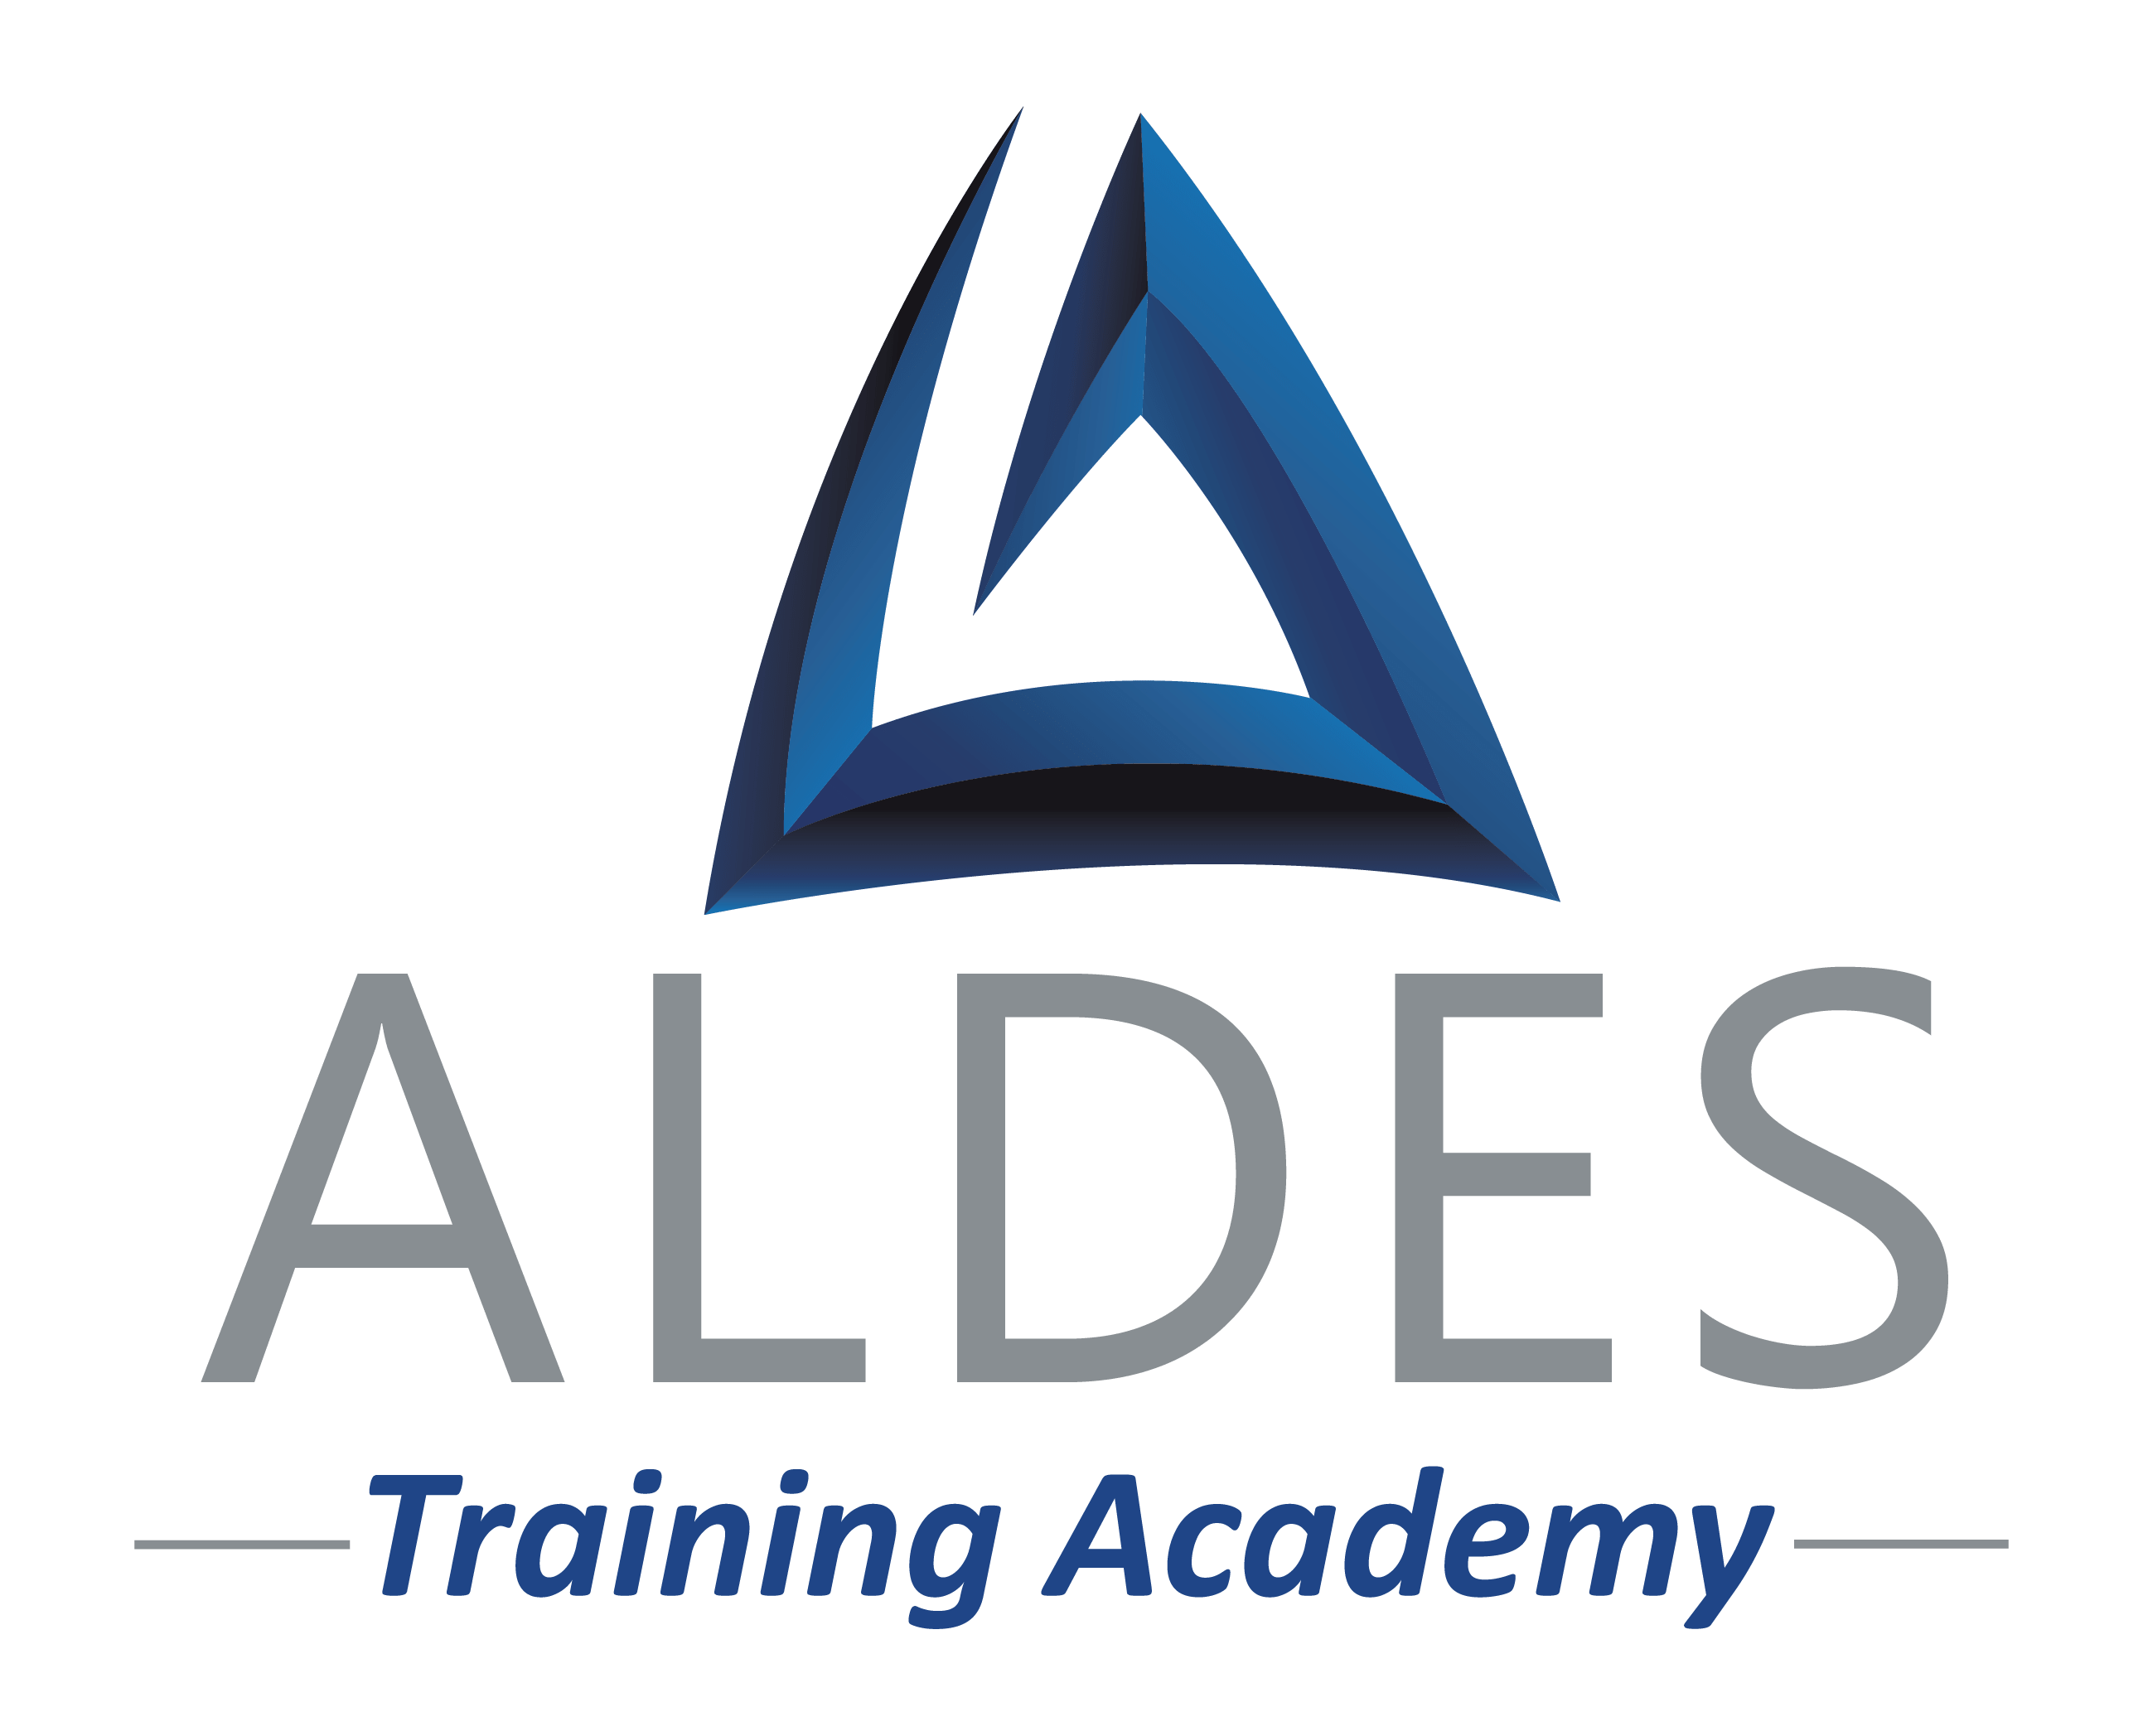 aldes-training-academy-primary-logo-transparent-background-jul-2020